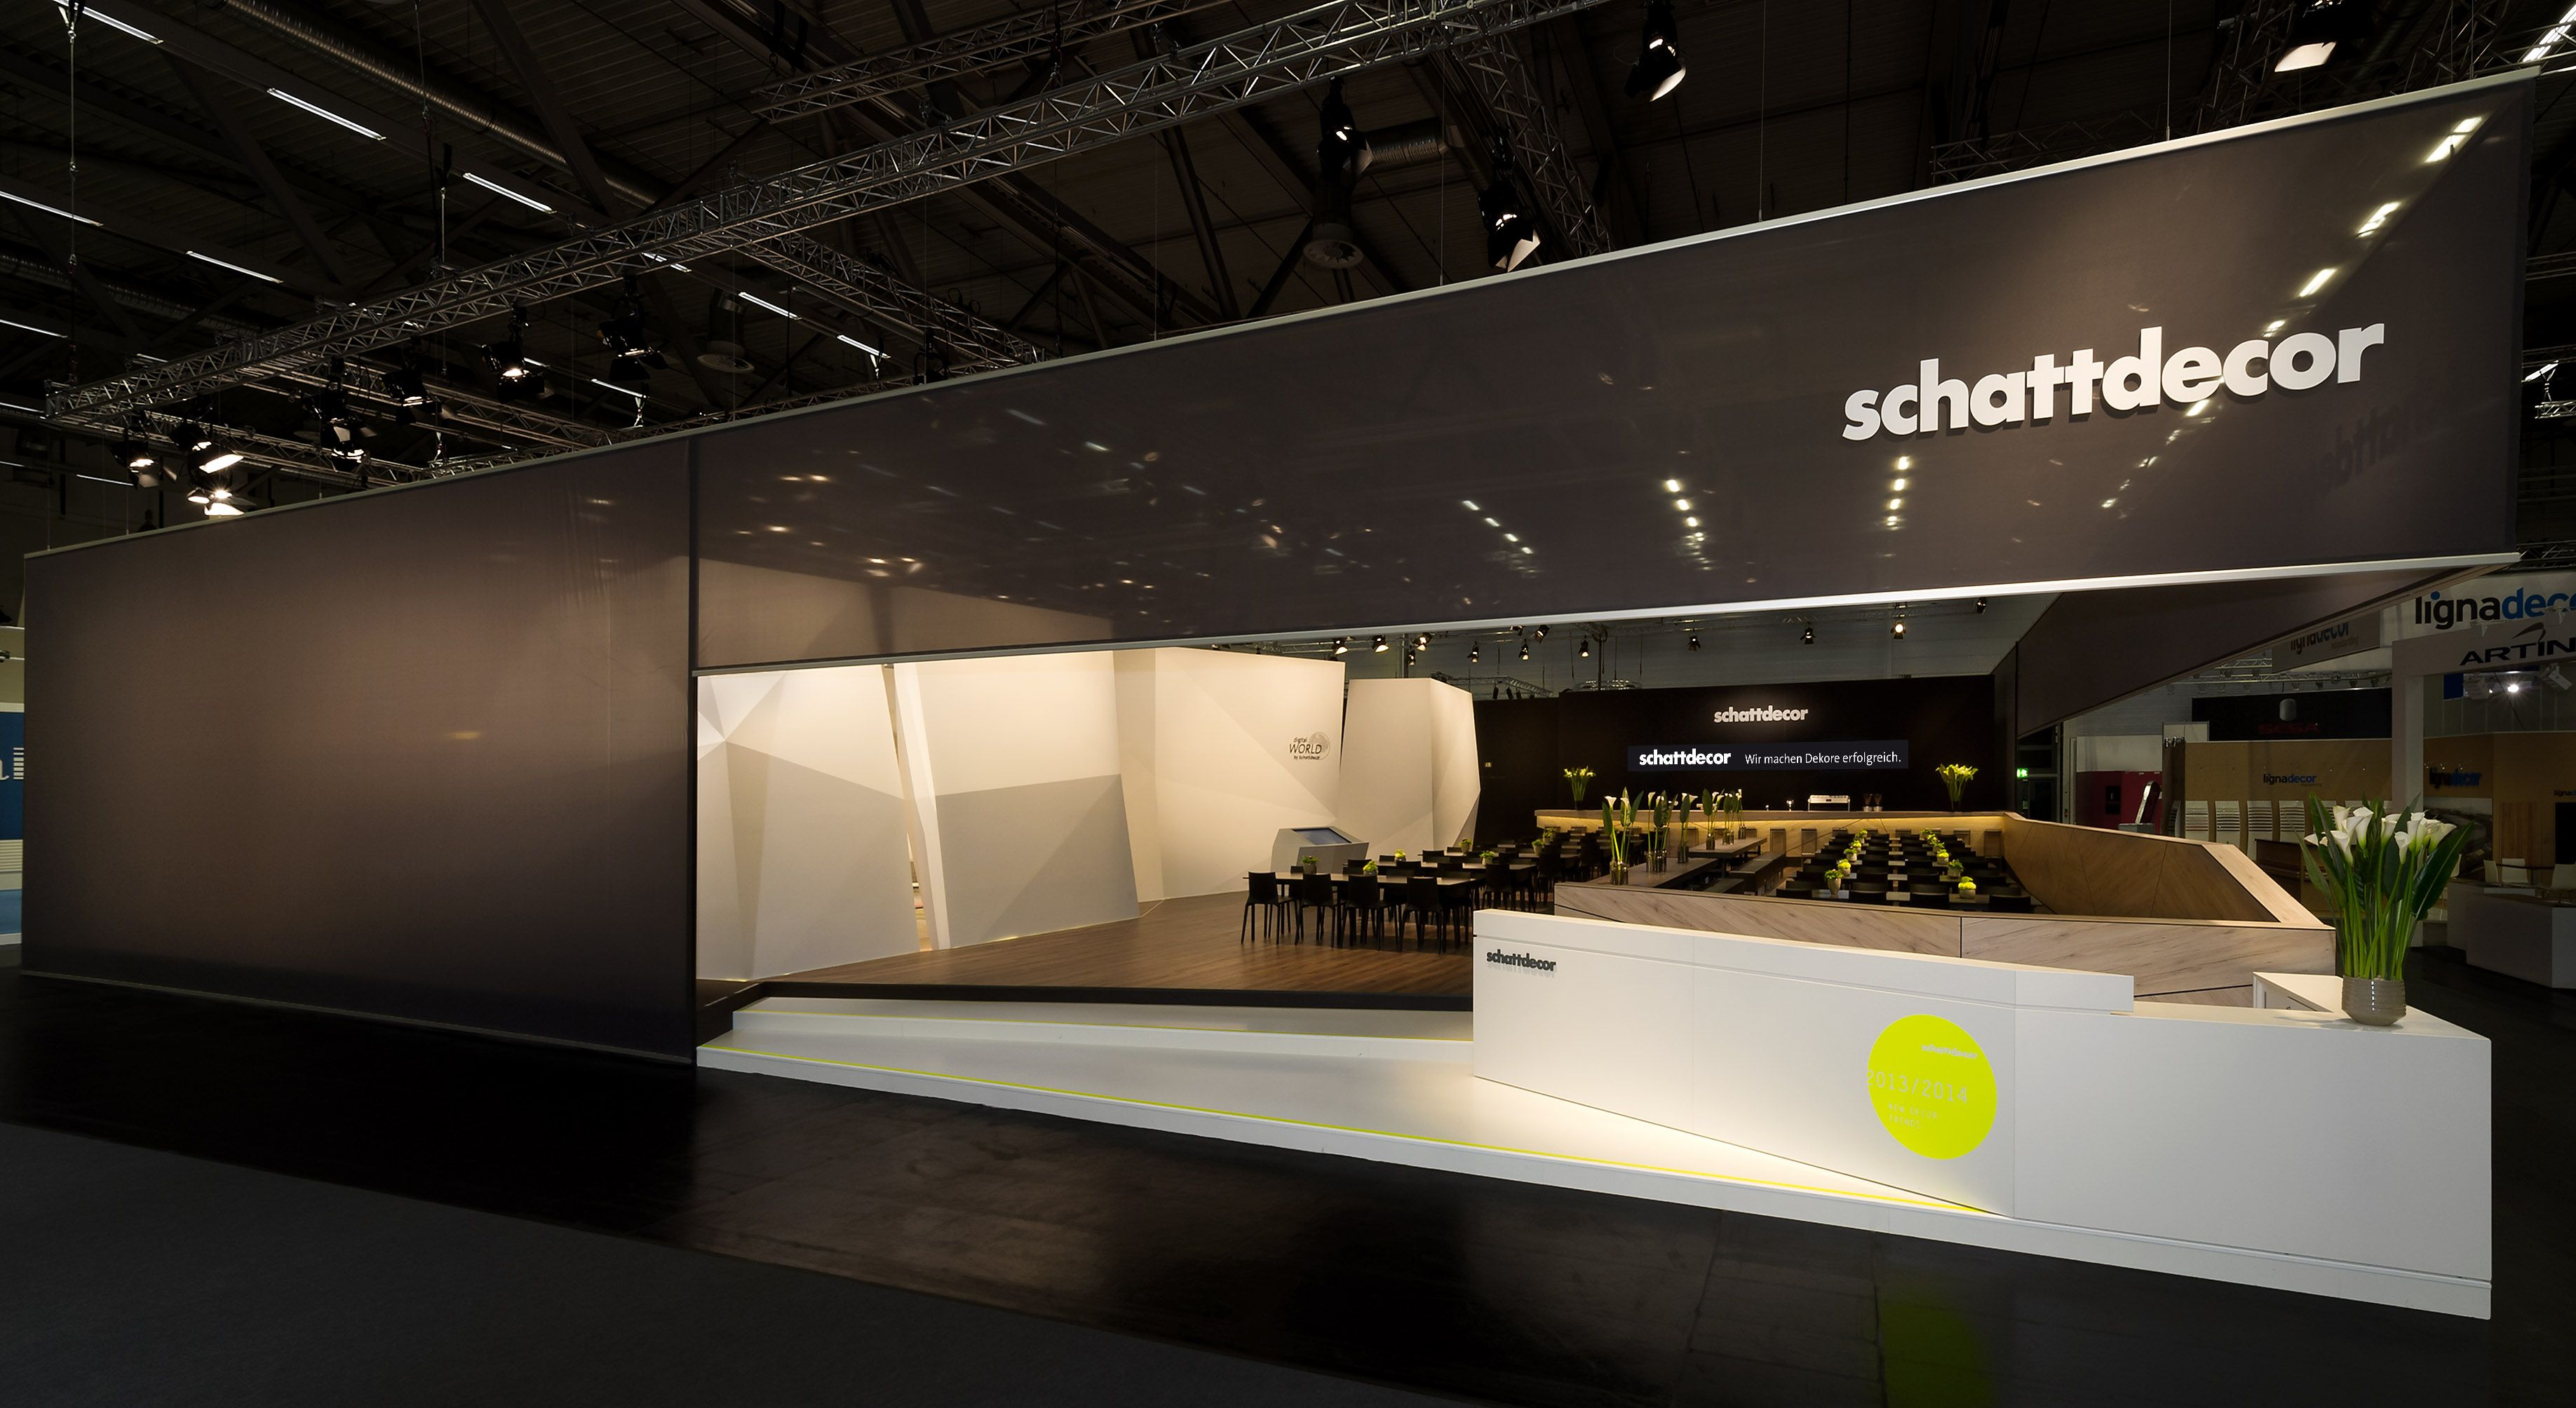 schattdecor | Interzum | L | messedesign | projekte ...